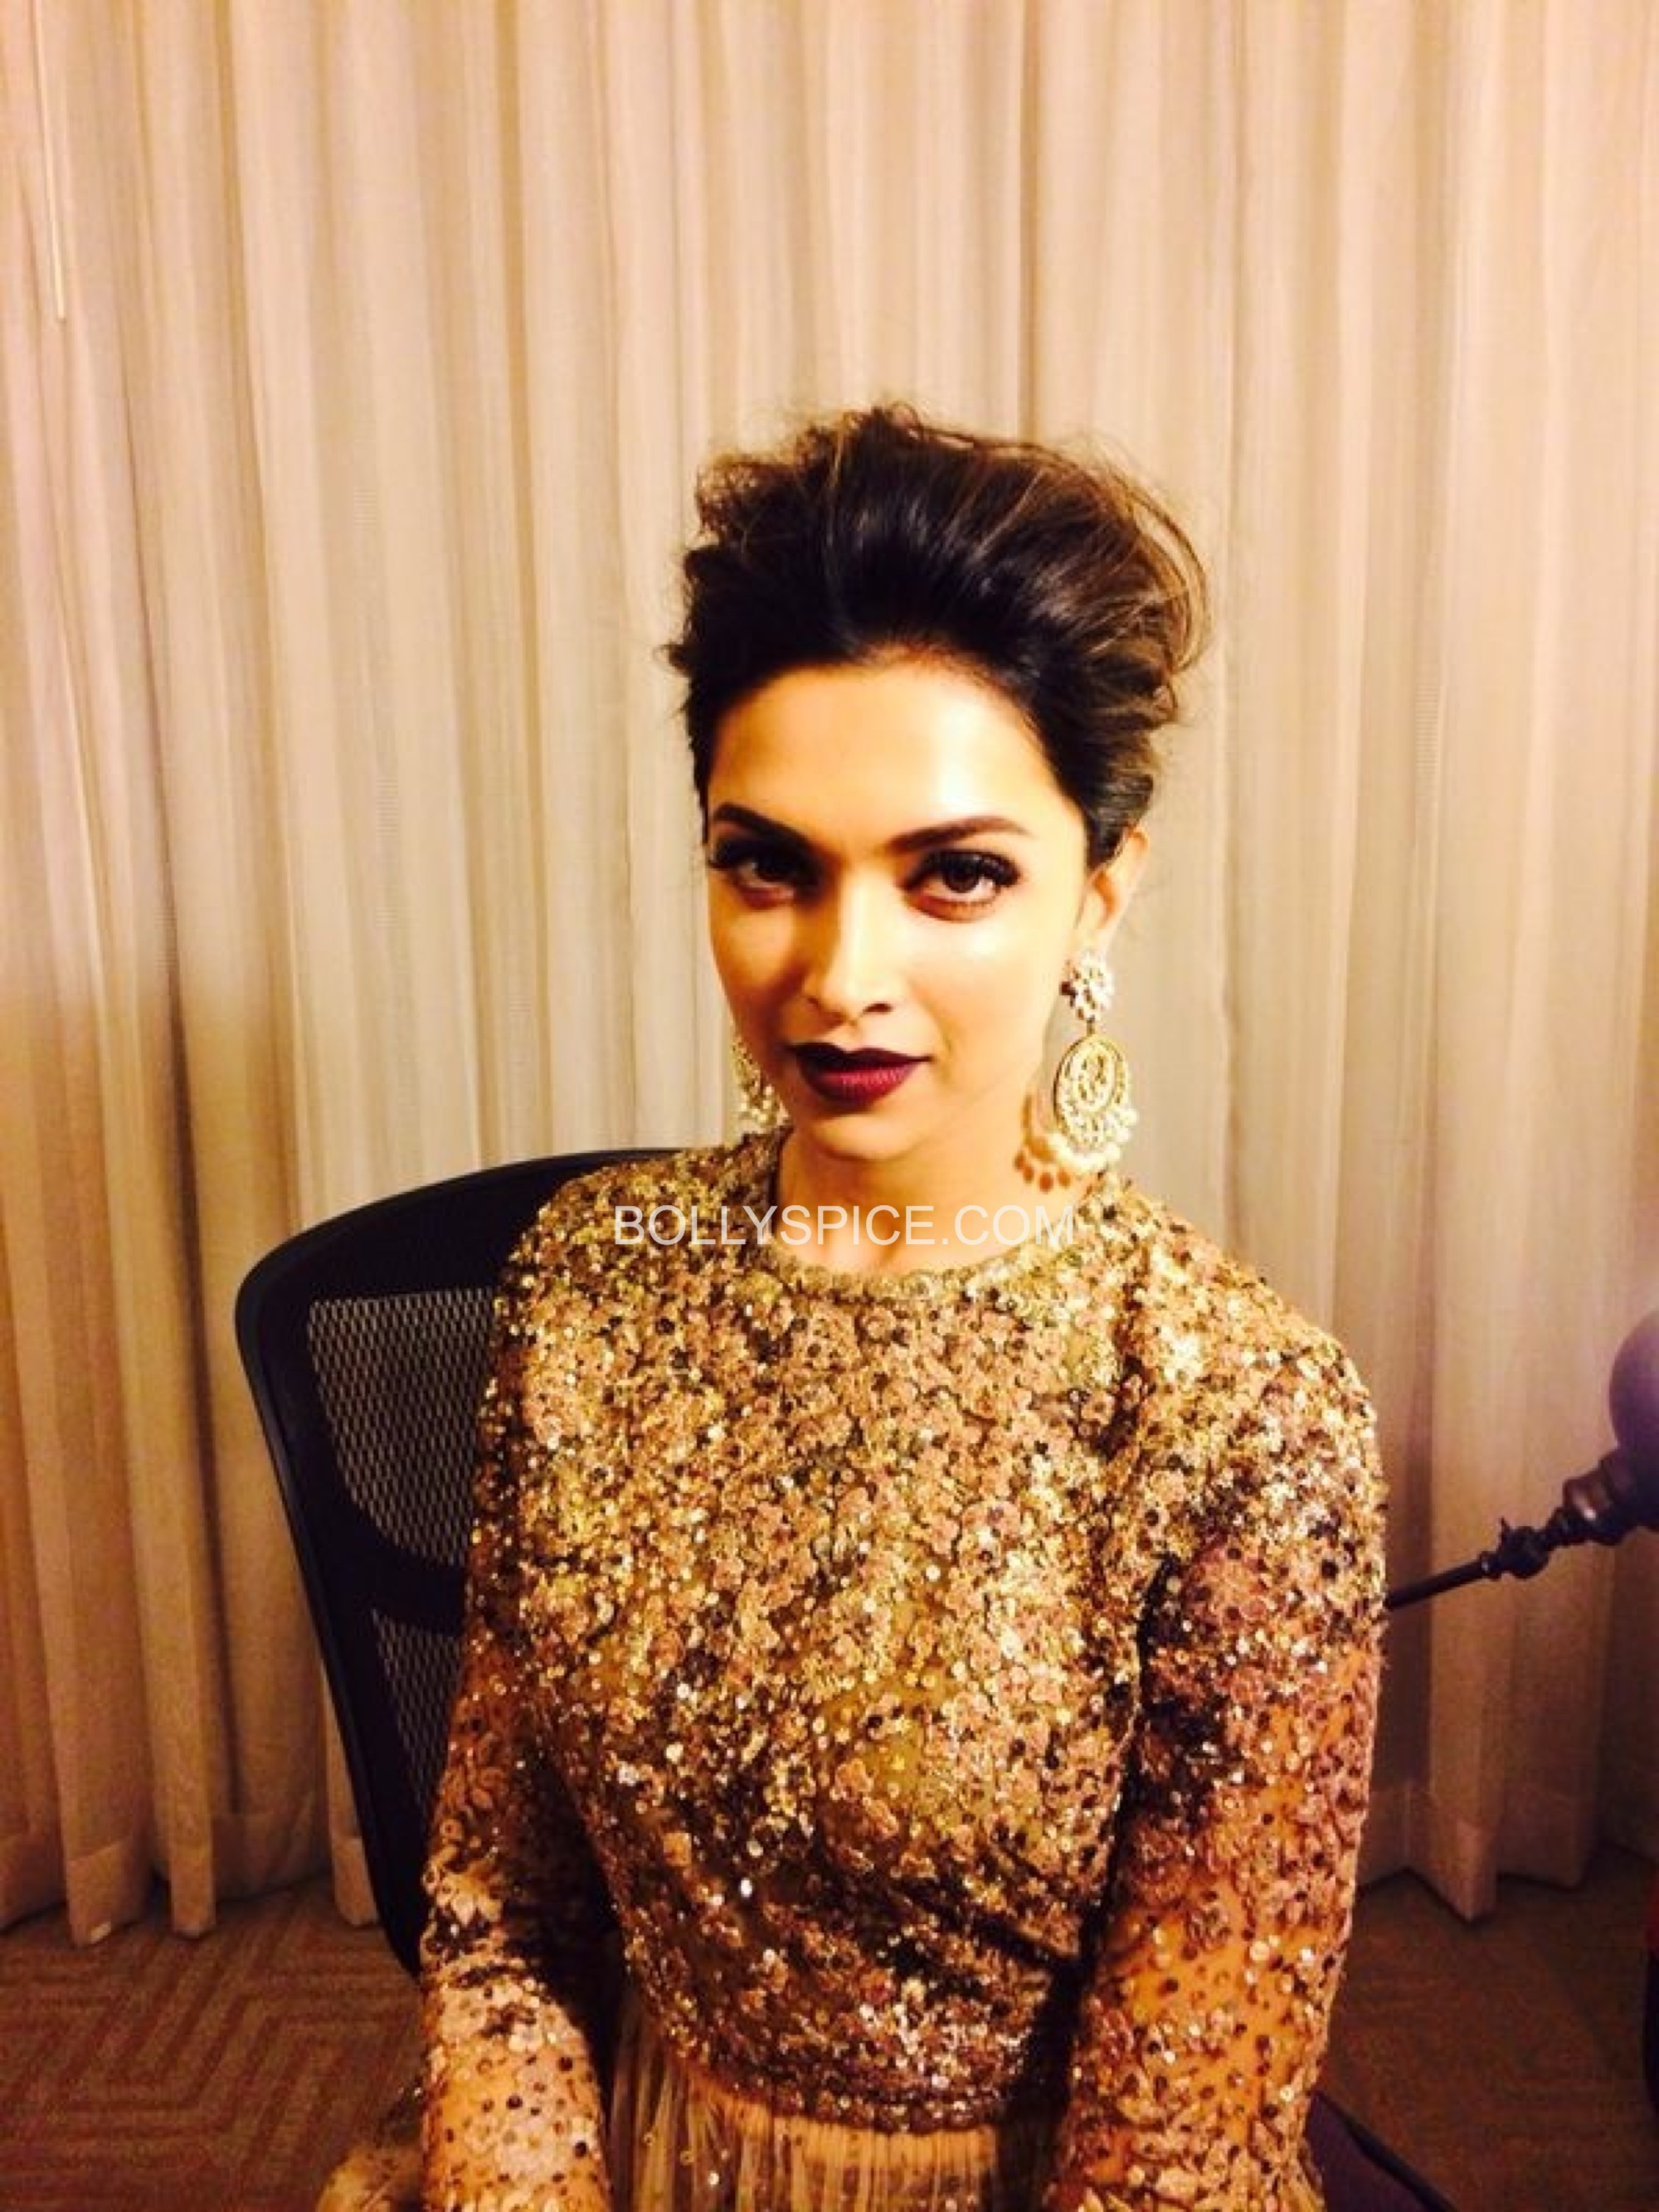 deepikaatiifaexclusive41 Exclusive IIFA Behind the Scenes Pictures of Deepika Padukones Hair and Makeup by Daniel Bauer